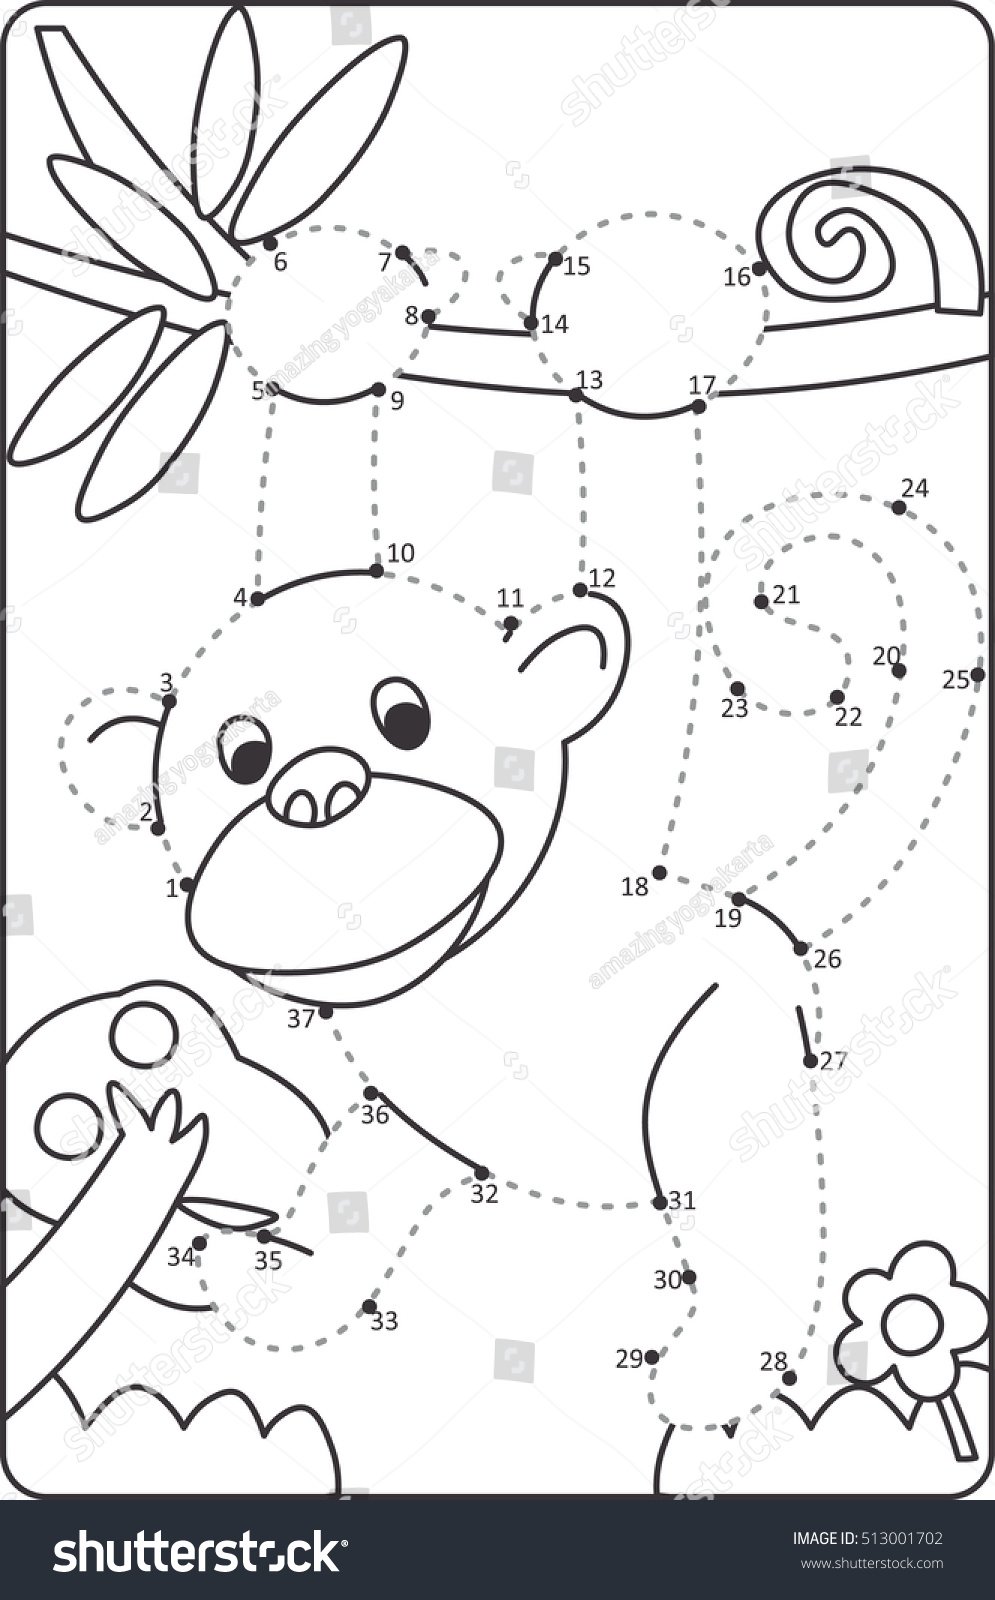 How Draw Monkey Drawing Children Dot Stock Vector Royalty Free